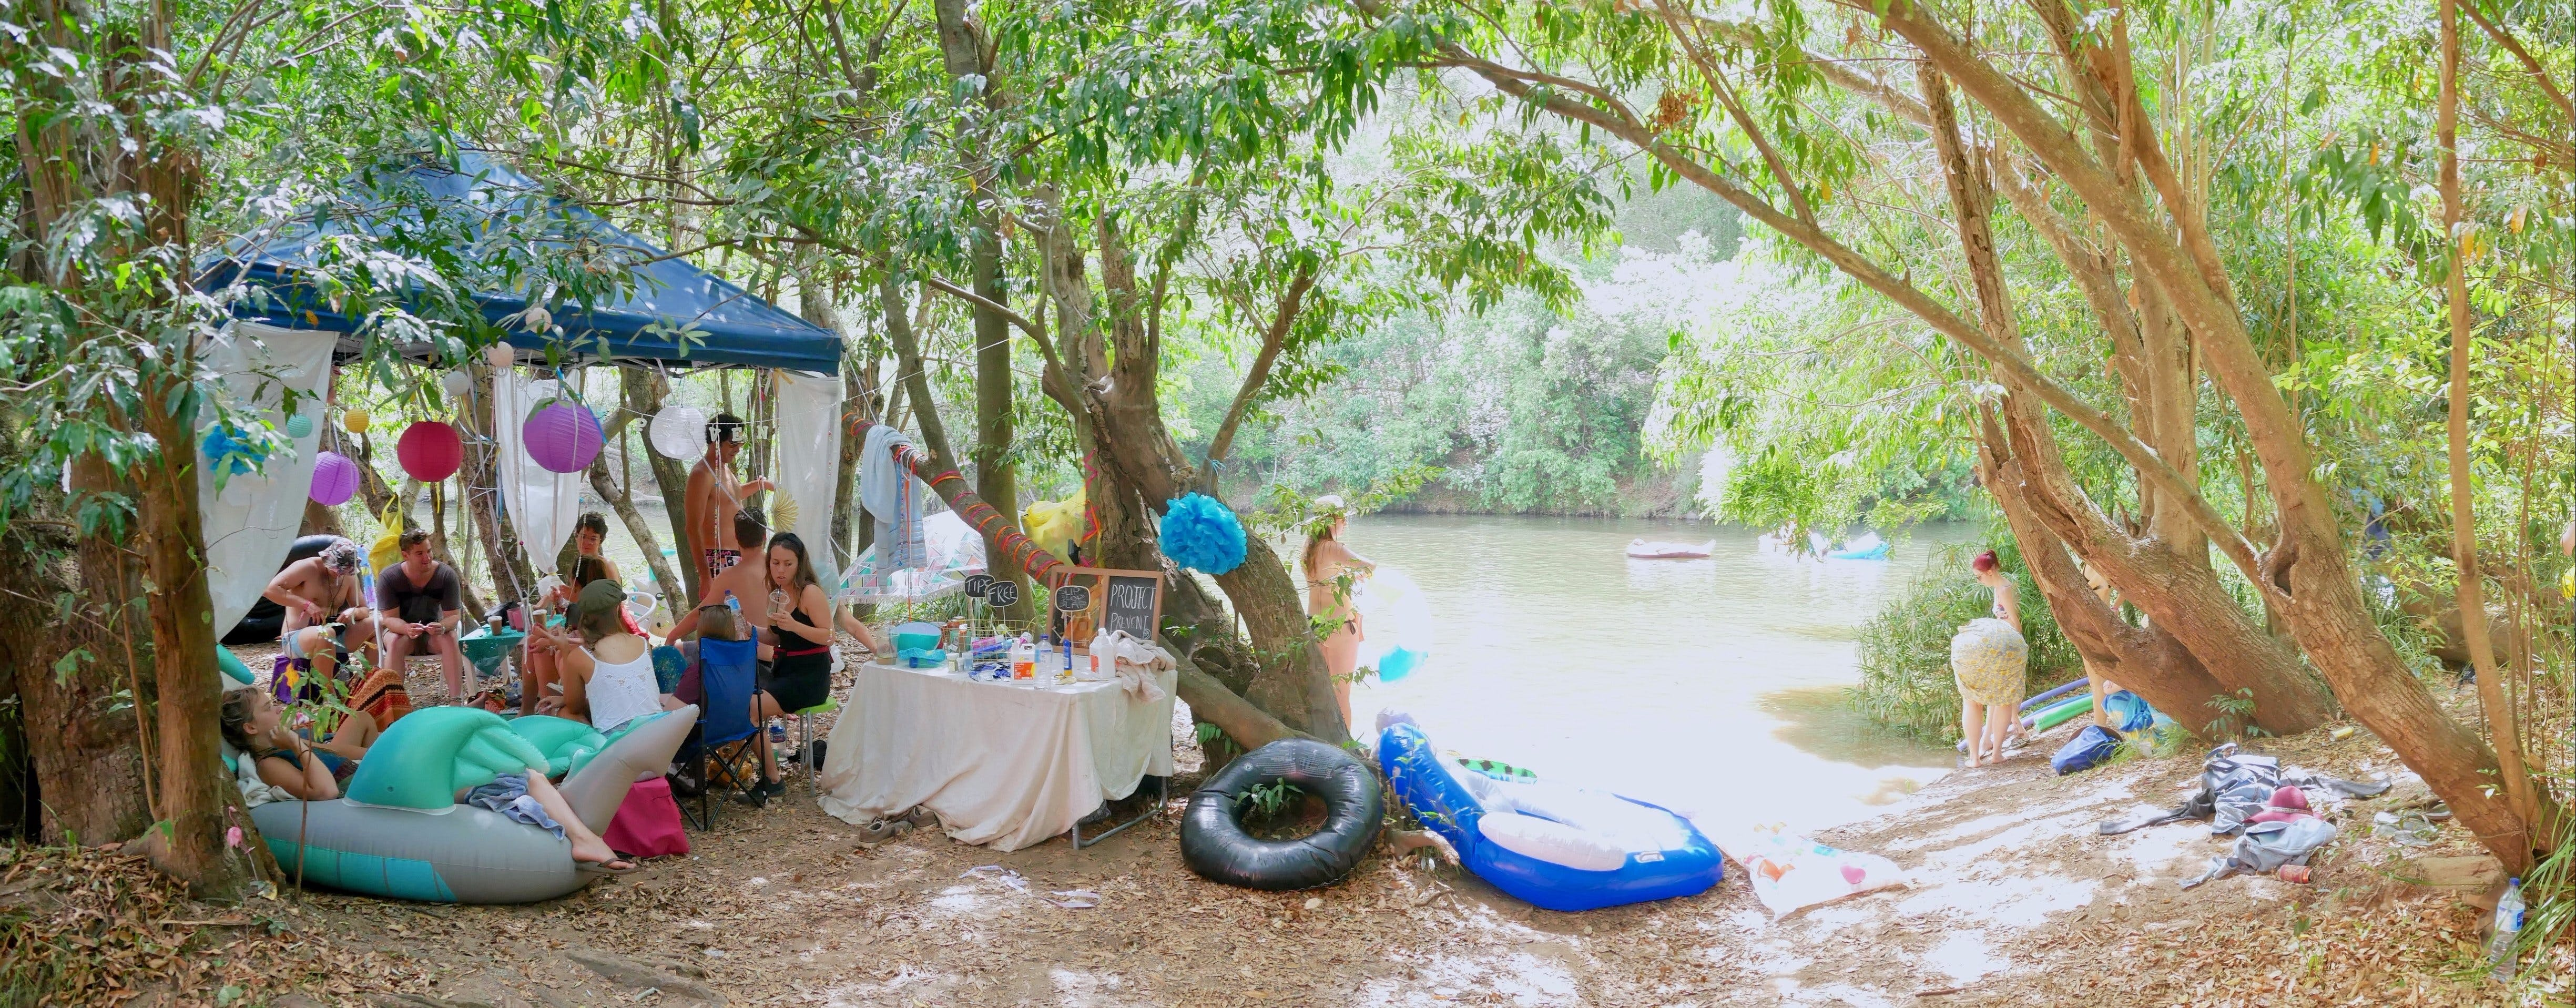 Jungle Love Festival - Mount Gambier Accommodation